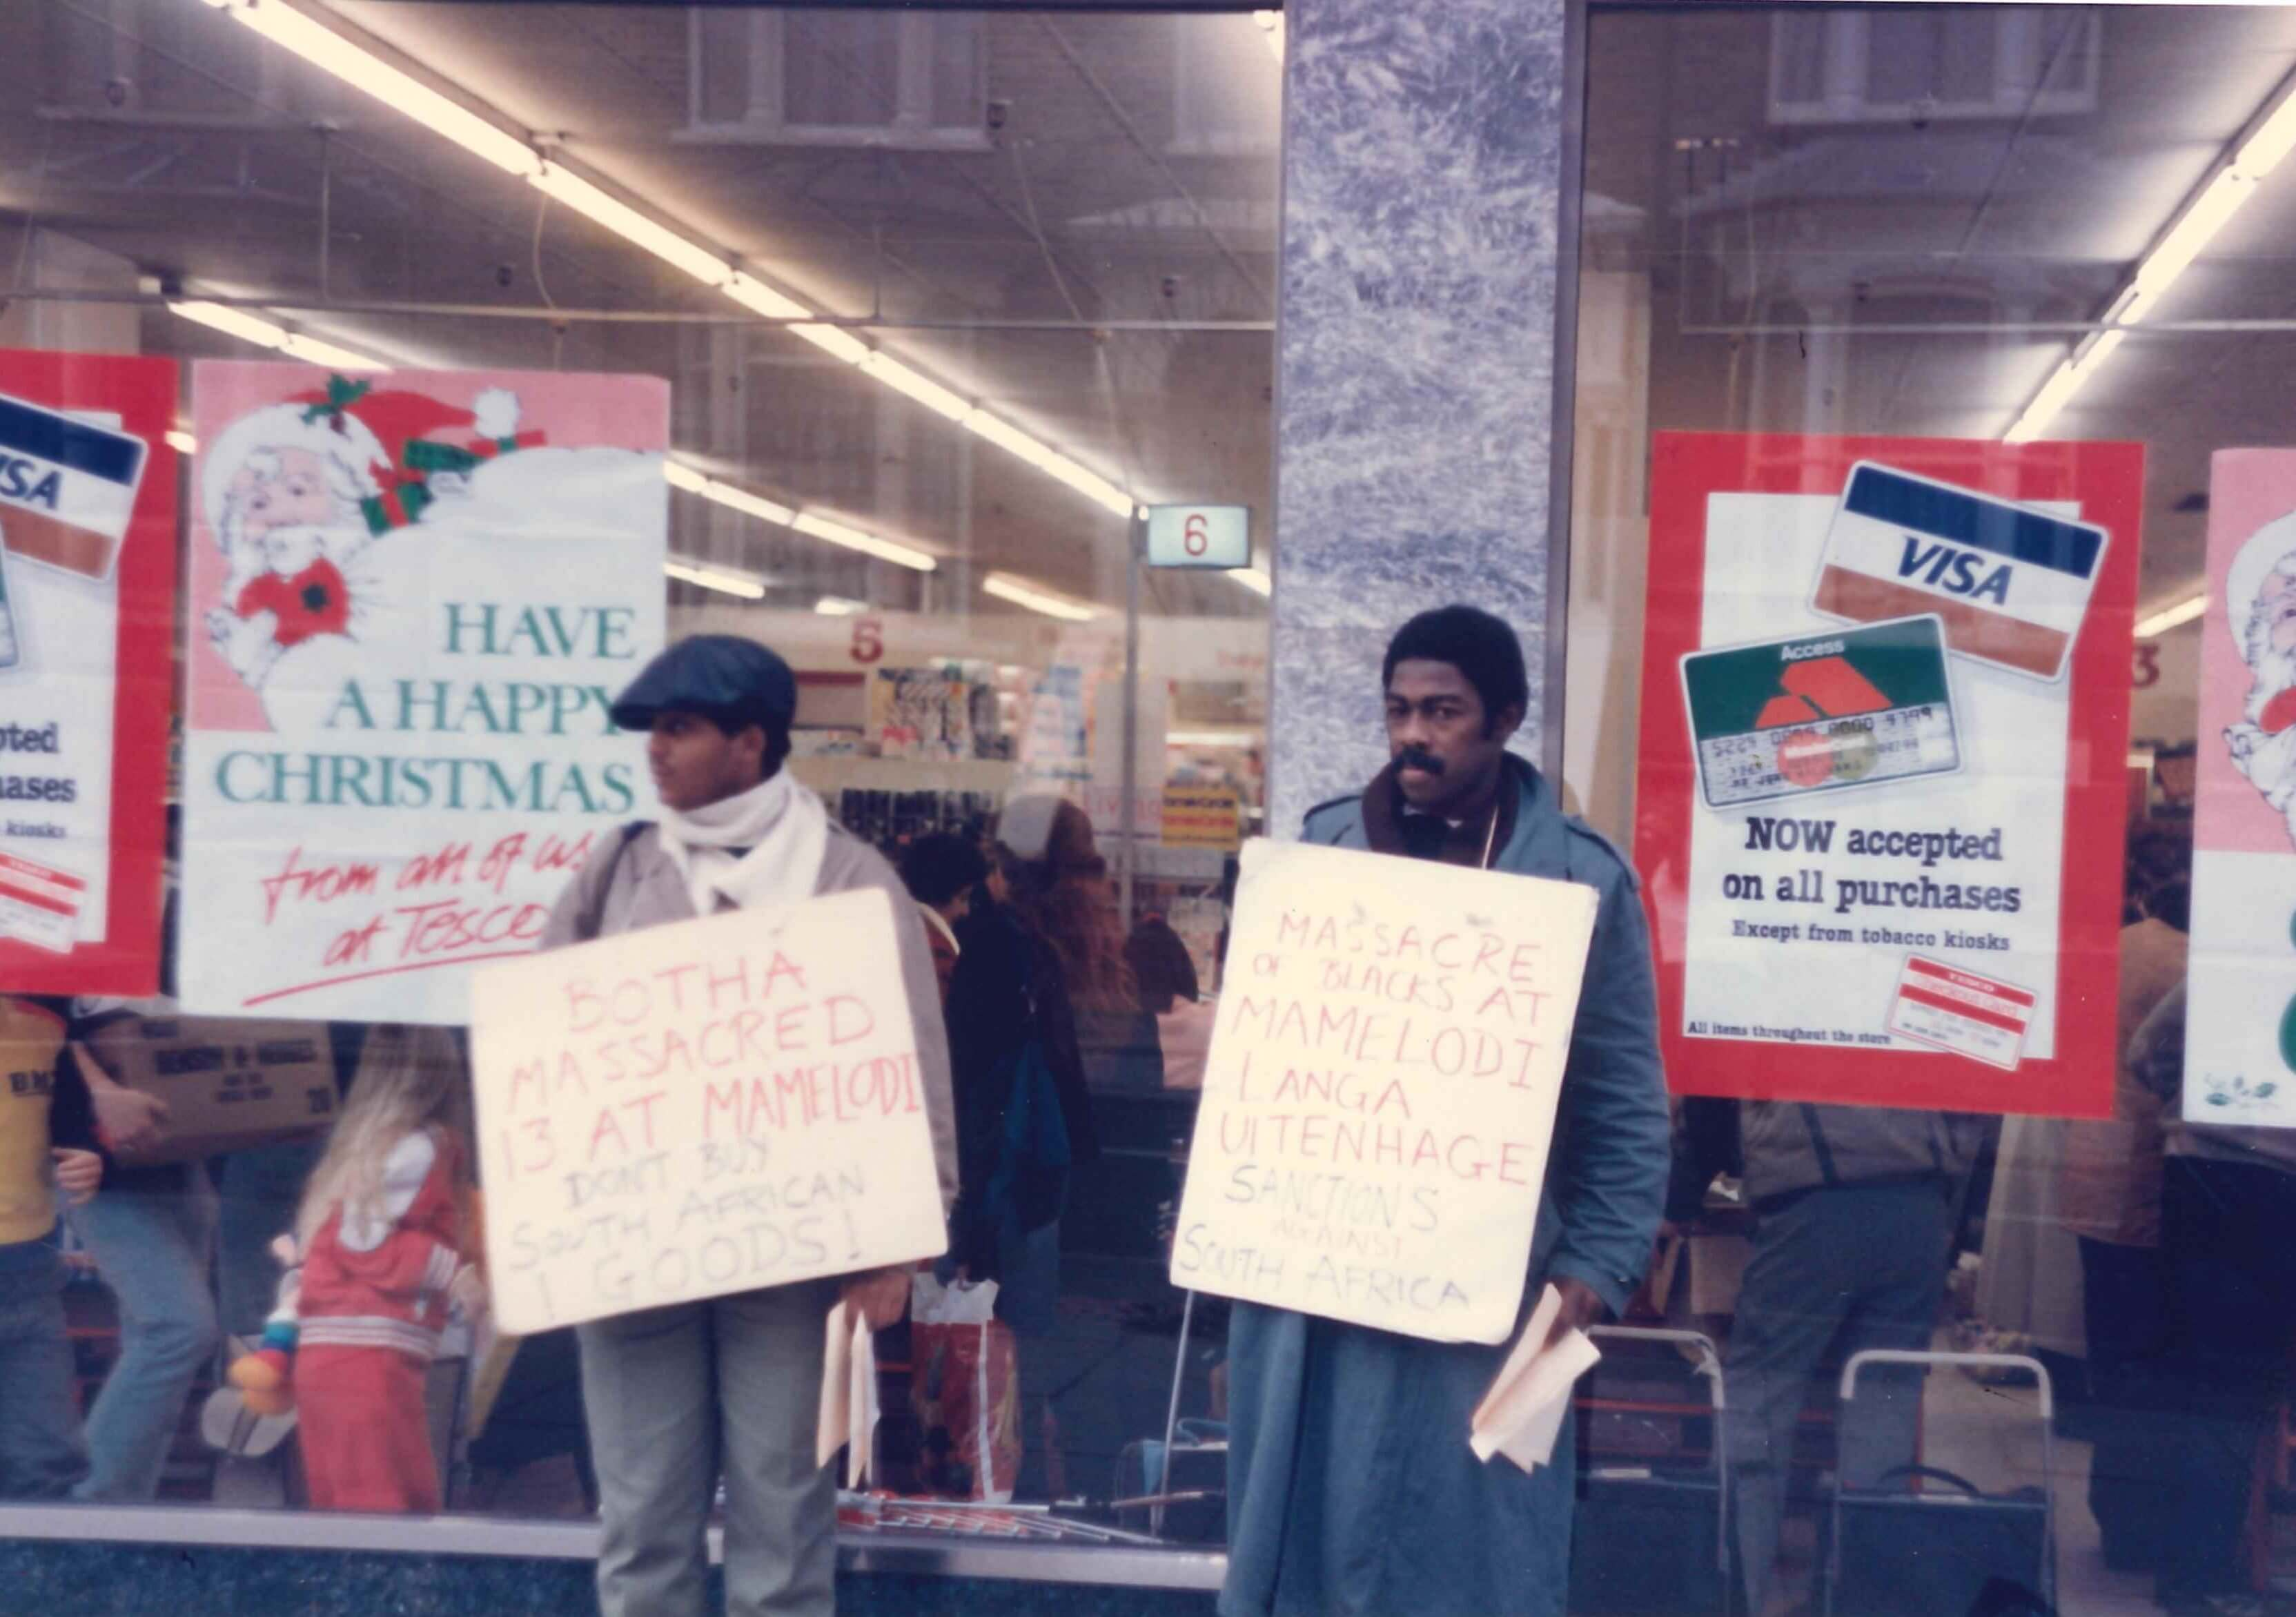 Colour photo shows Michael La Rose and Roxy Harris standing in front of the supermarket windows. A Christmas poster in the window helps to date the picture. Both protestors are wearing neck boards denouncing the Mamelodi massacre in South Africa a month earlier and encouraging shoppers not to buy South African goods.